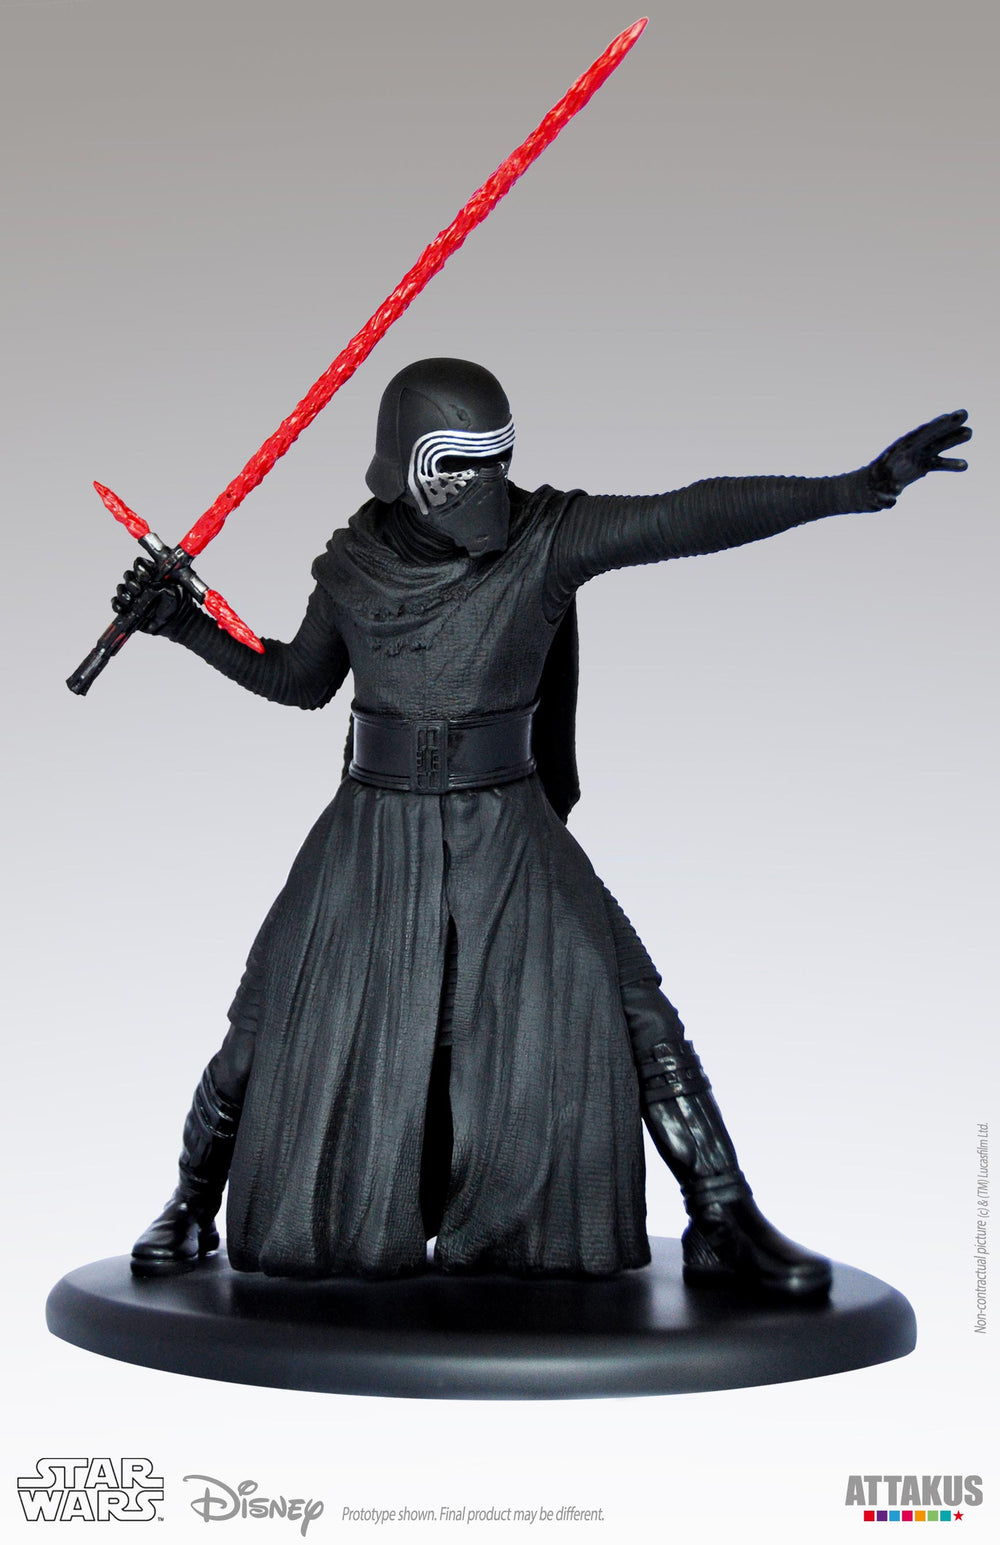 Attakus Star Wars Episode VII Kylo Ren 1/10 Statue